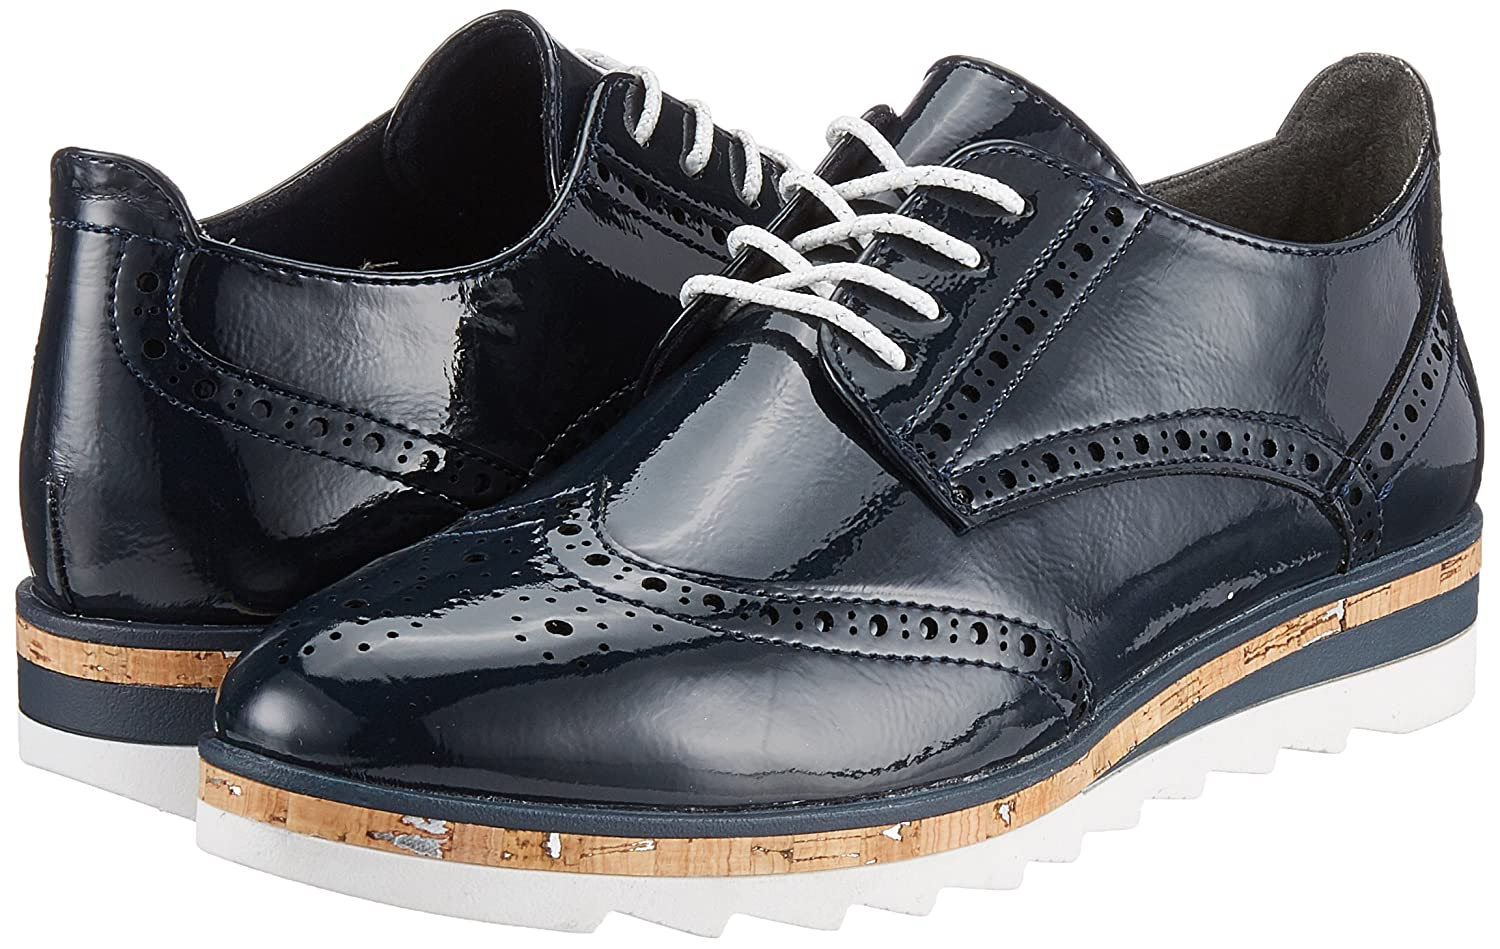 Marco Tozzi 23715, Scarpe Stringate Brouge Patent) Donna  Blu (Navy Patent) Brouge ad9ba8